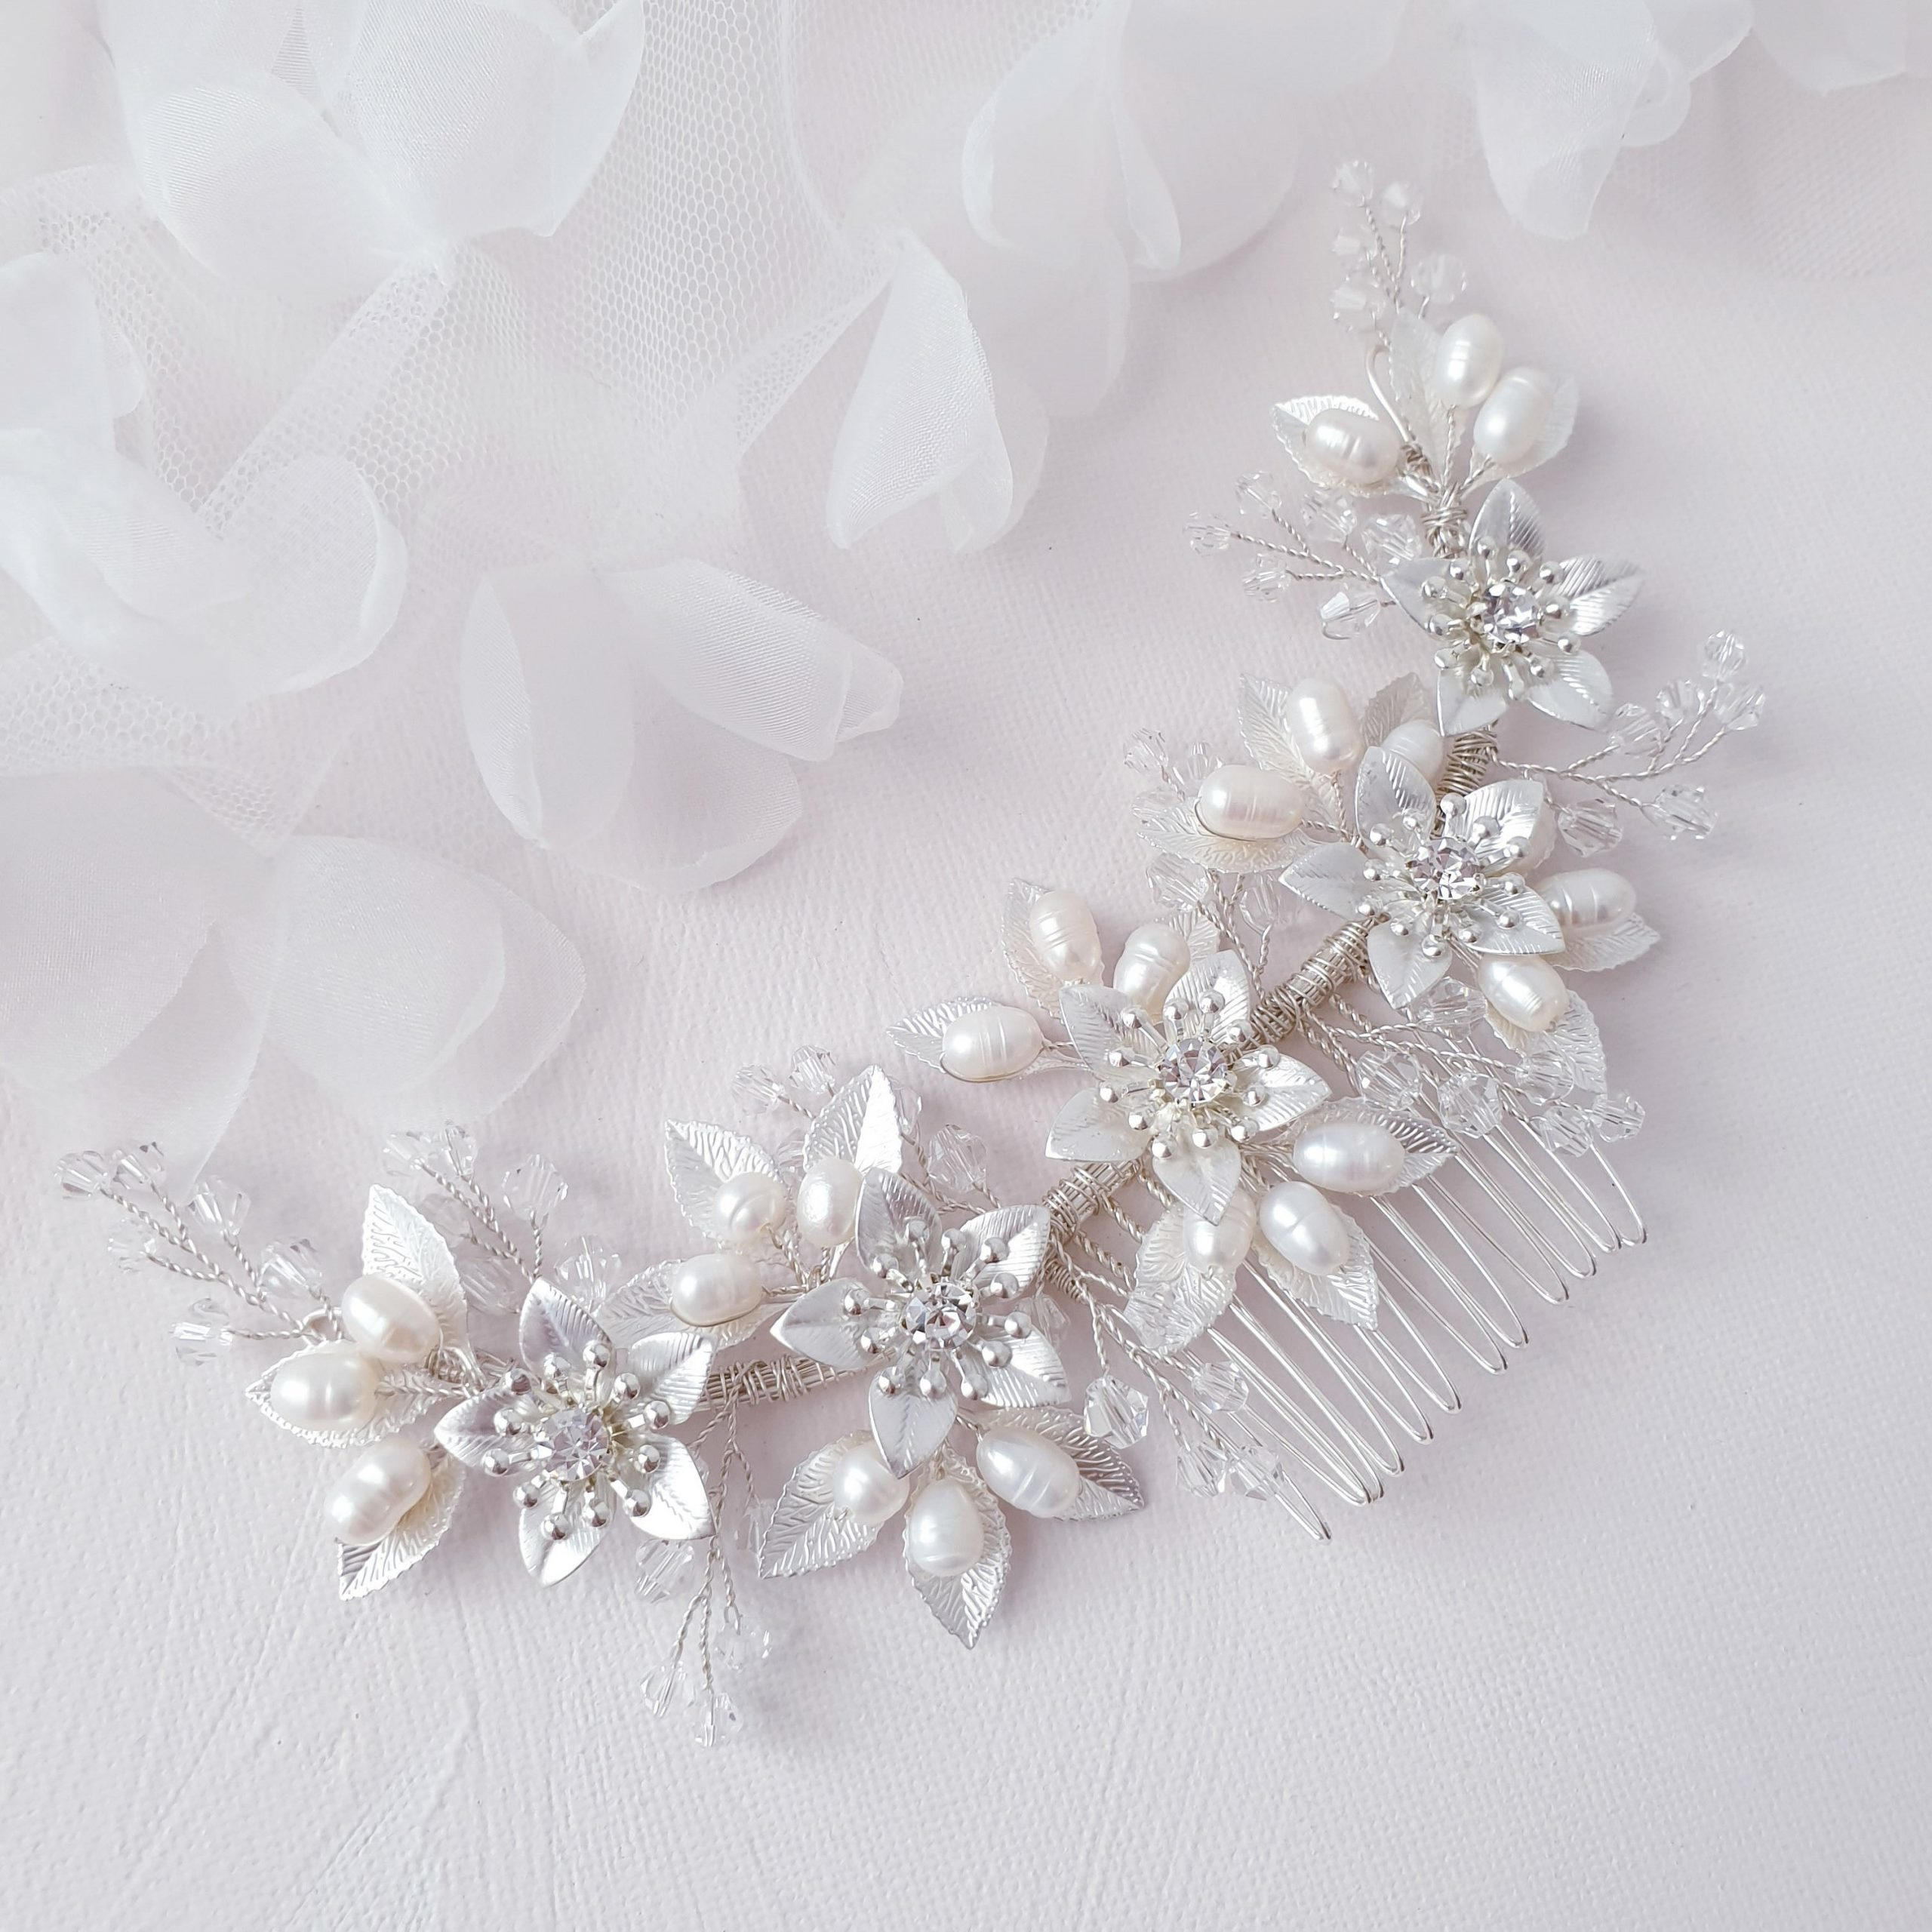 Signature Silver Bridal Flower Pearl Hair Comb   Wedding Haircomb Accessories  Crystal Hairpiece